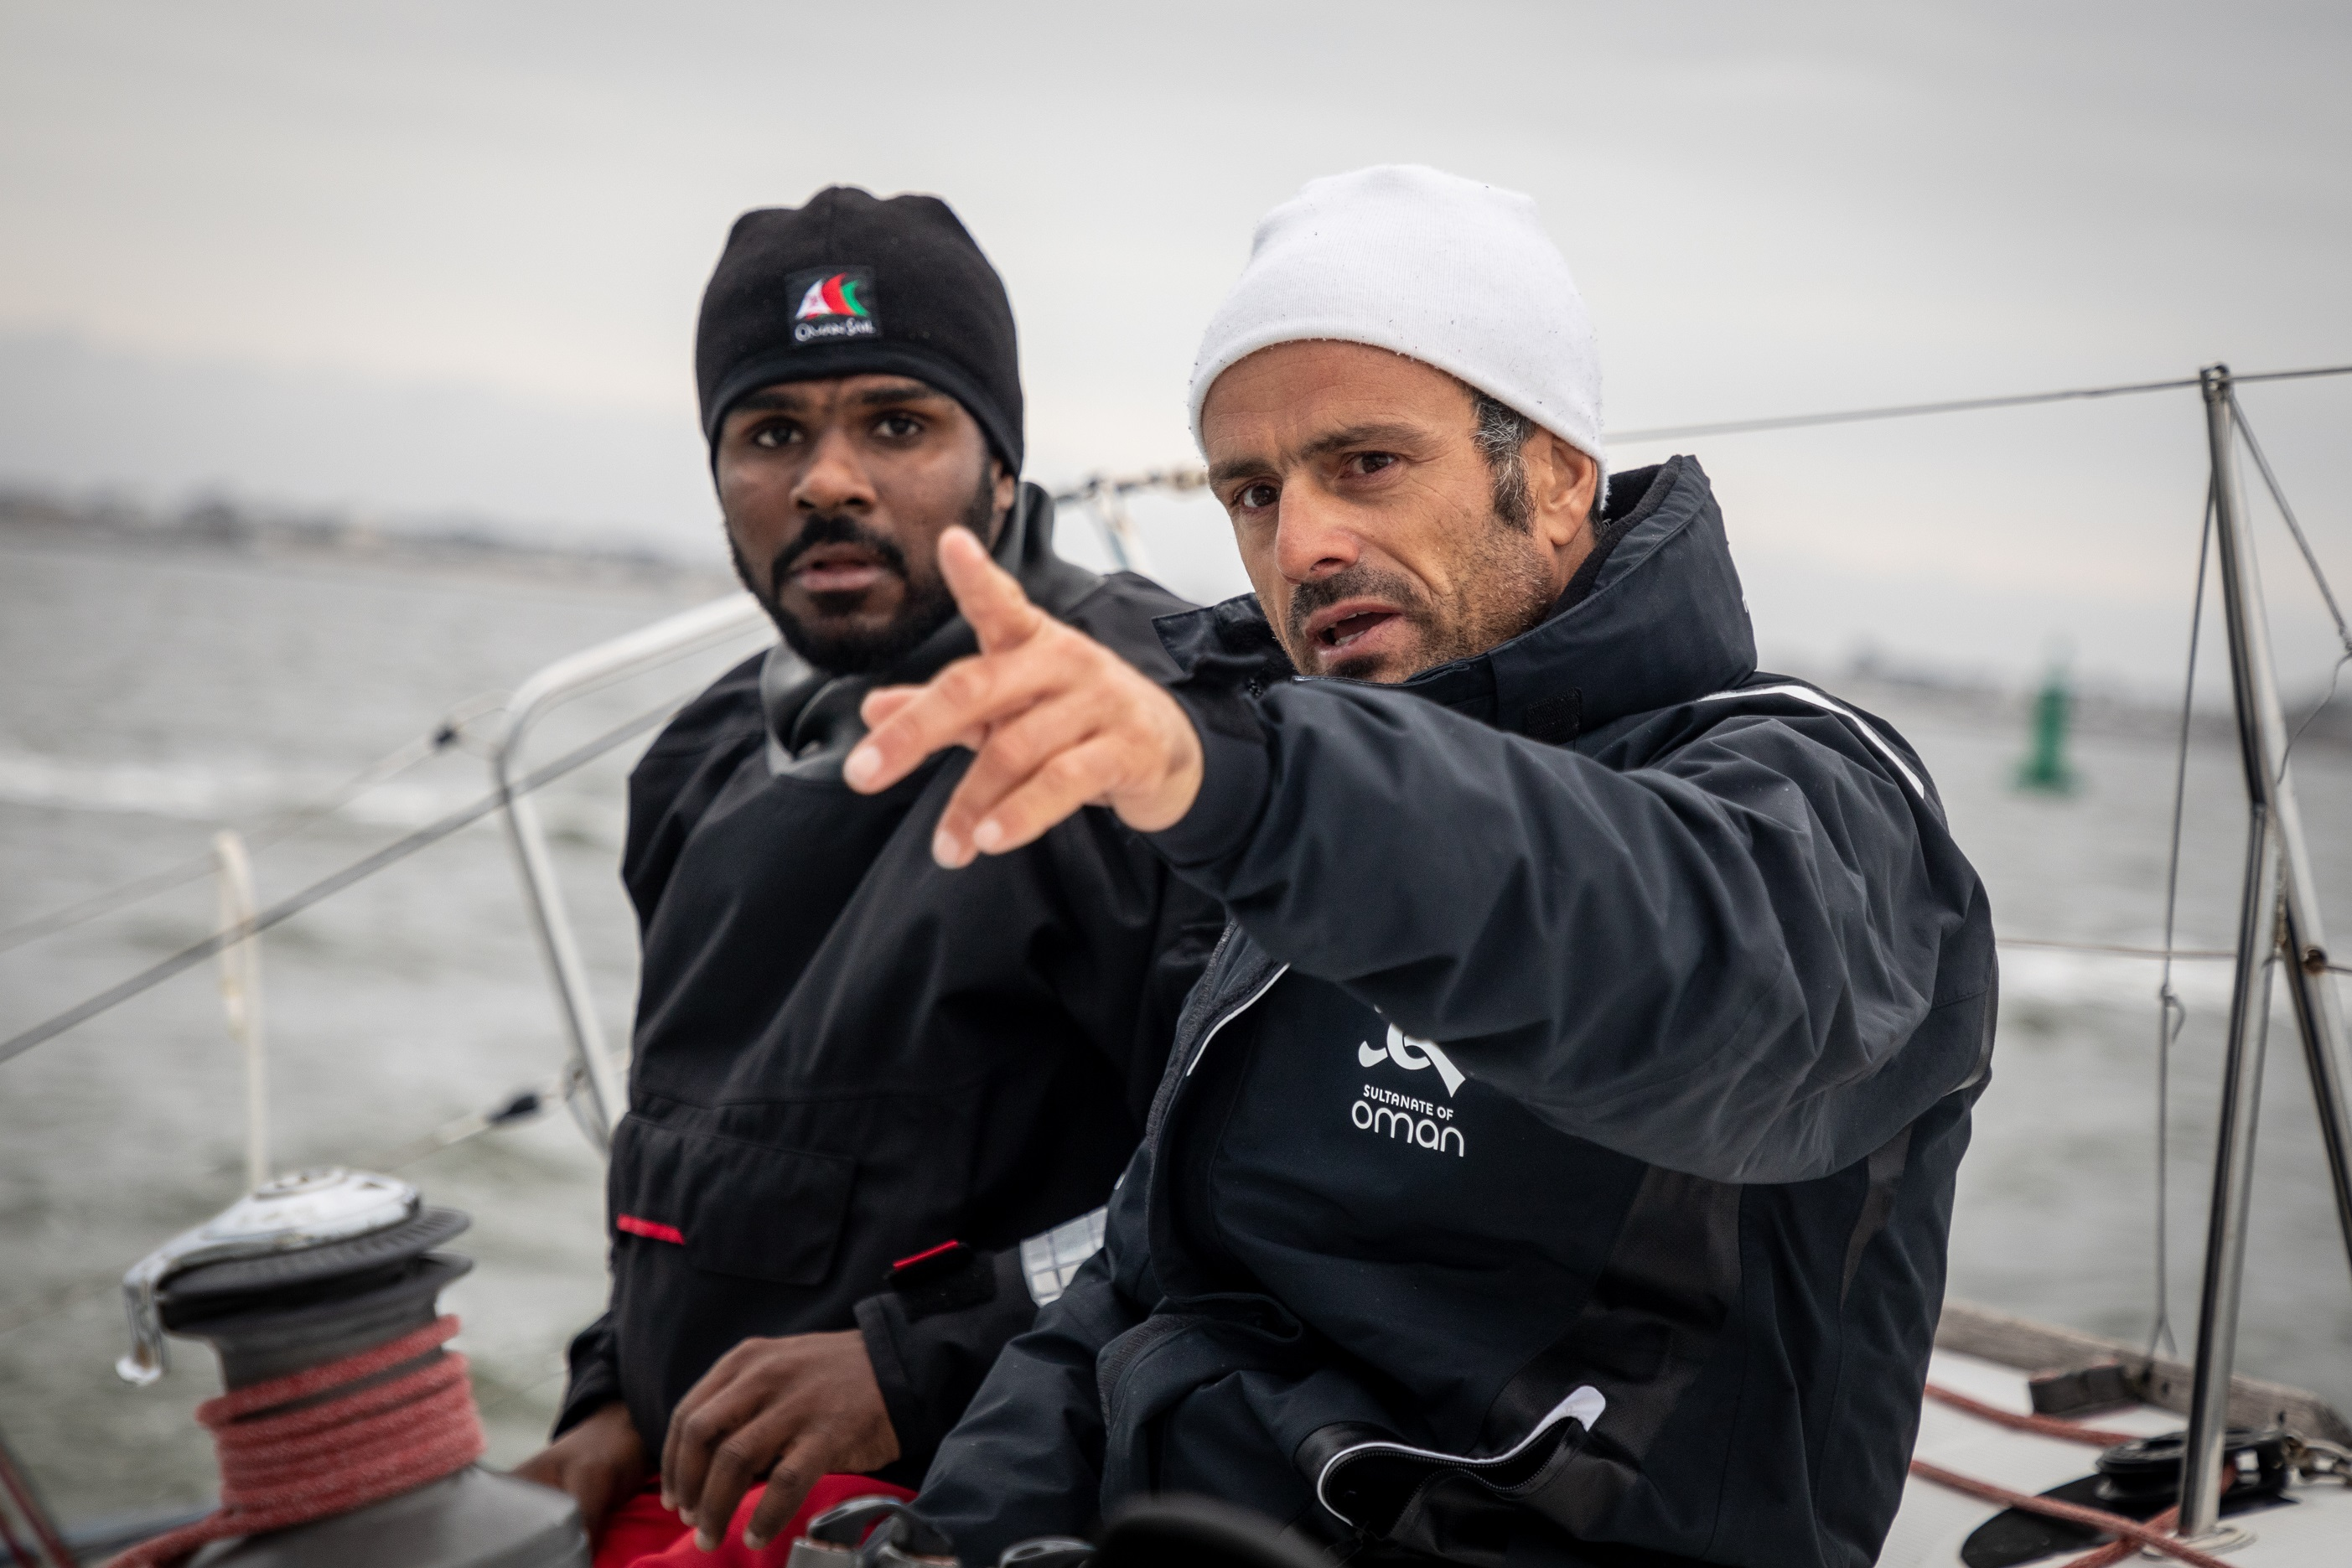 Franck Cammas to add his skills and experience to Oman Sail campaigns in 2019